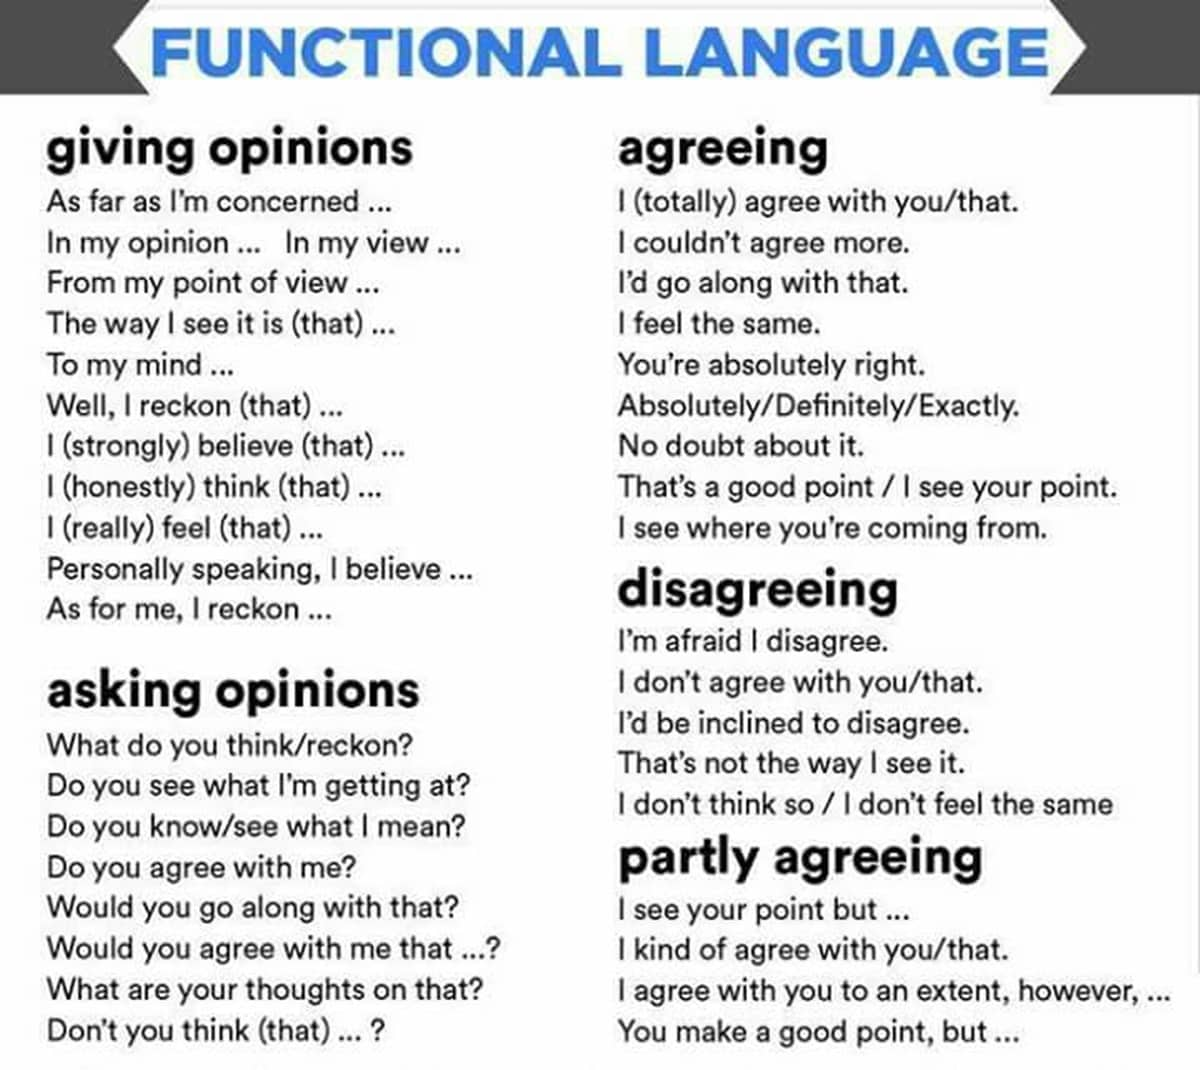 Expressions For Agreeing And Disagreeing In English